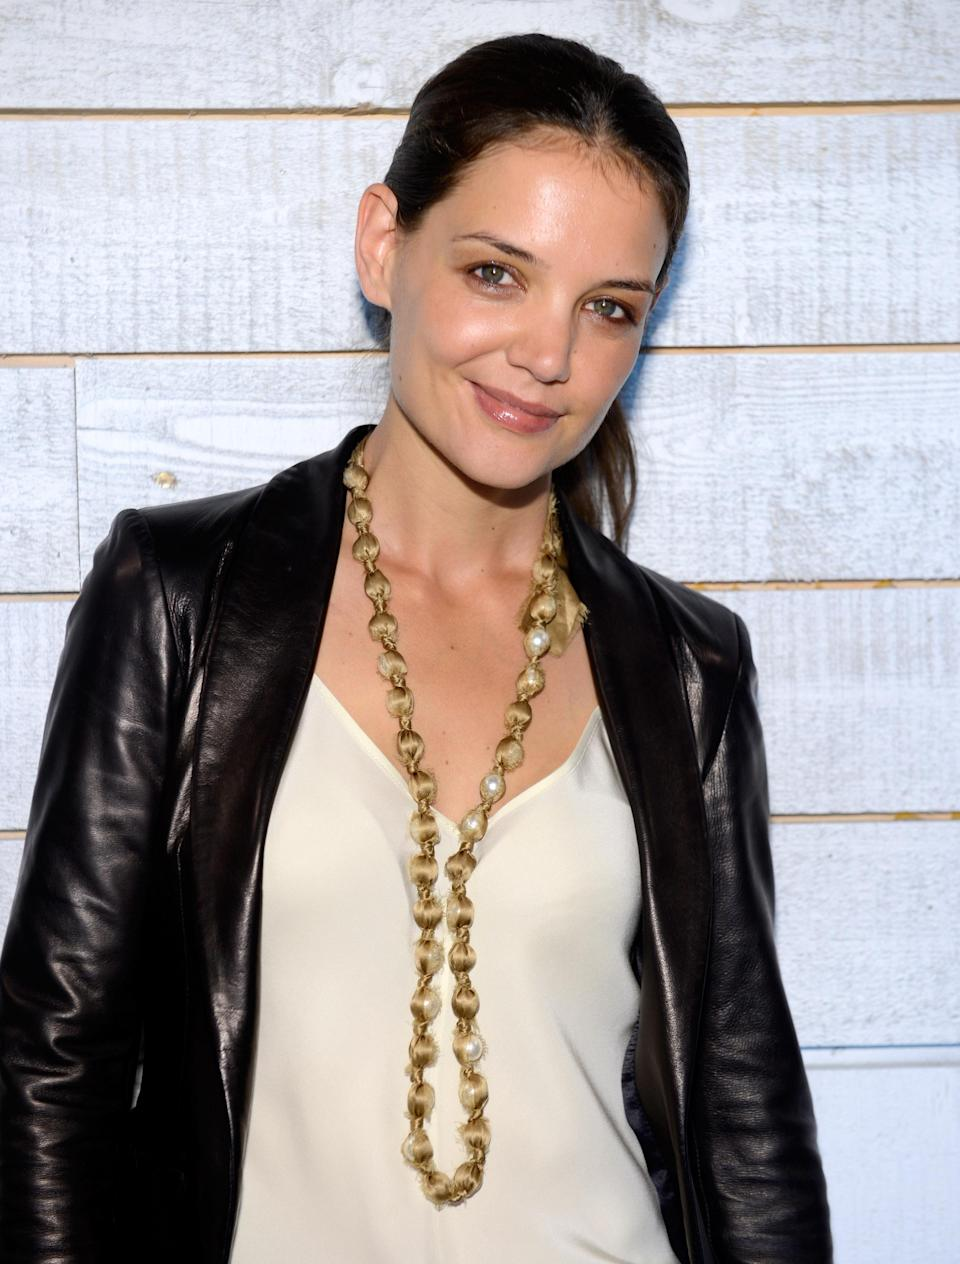 """<div class=""""caption-credit""""> Photo by: Kevin Mazur/WireImage/Getty</div>In addition to a few elite magazine editors, former <i>American Idol</i> contestant Katharine McPhee and make-up artist Bobbi Brown, who just signed Holmes as spokeswoman for her cosmetics line, gathered for the event. Holmes <a rel=""""nofollow noopener"""" href=""""http://yhoo.it/NLBYpA"""" target=""""_blank"""" data-ylk=""""slk:daughter Suri"""" class=""""link rapid-noclick-resp"""">daughter Suri</a>, however, was a no-show. (Burn? No, she started school this week.) <br>"""